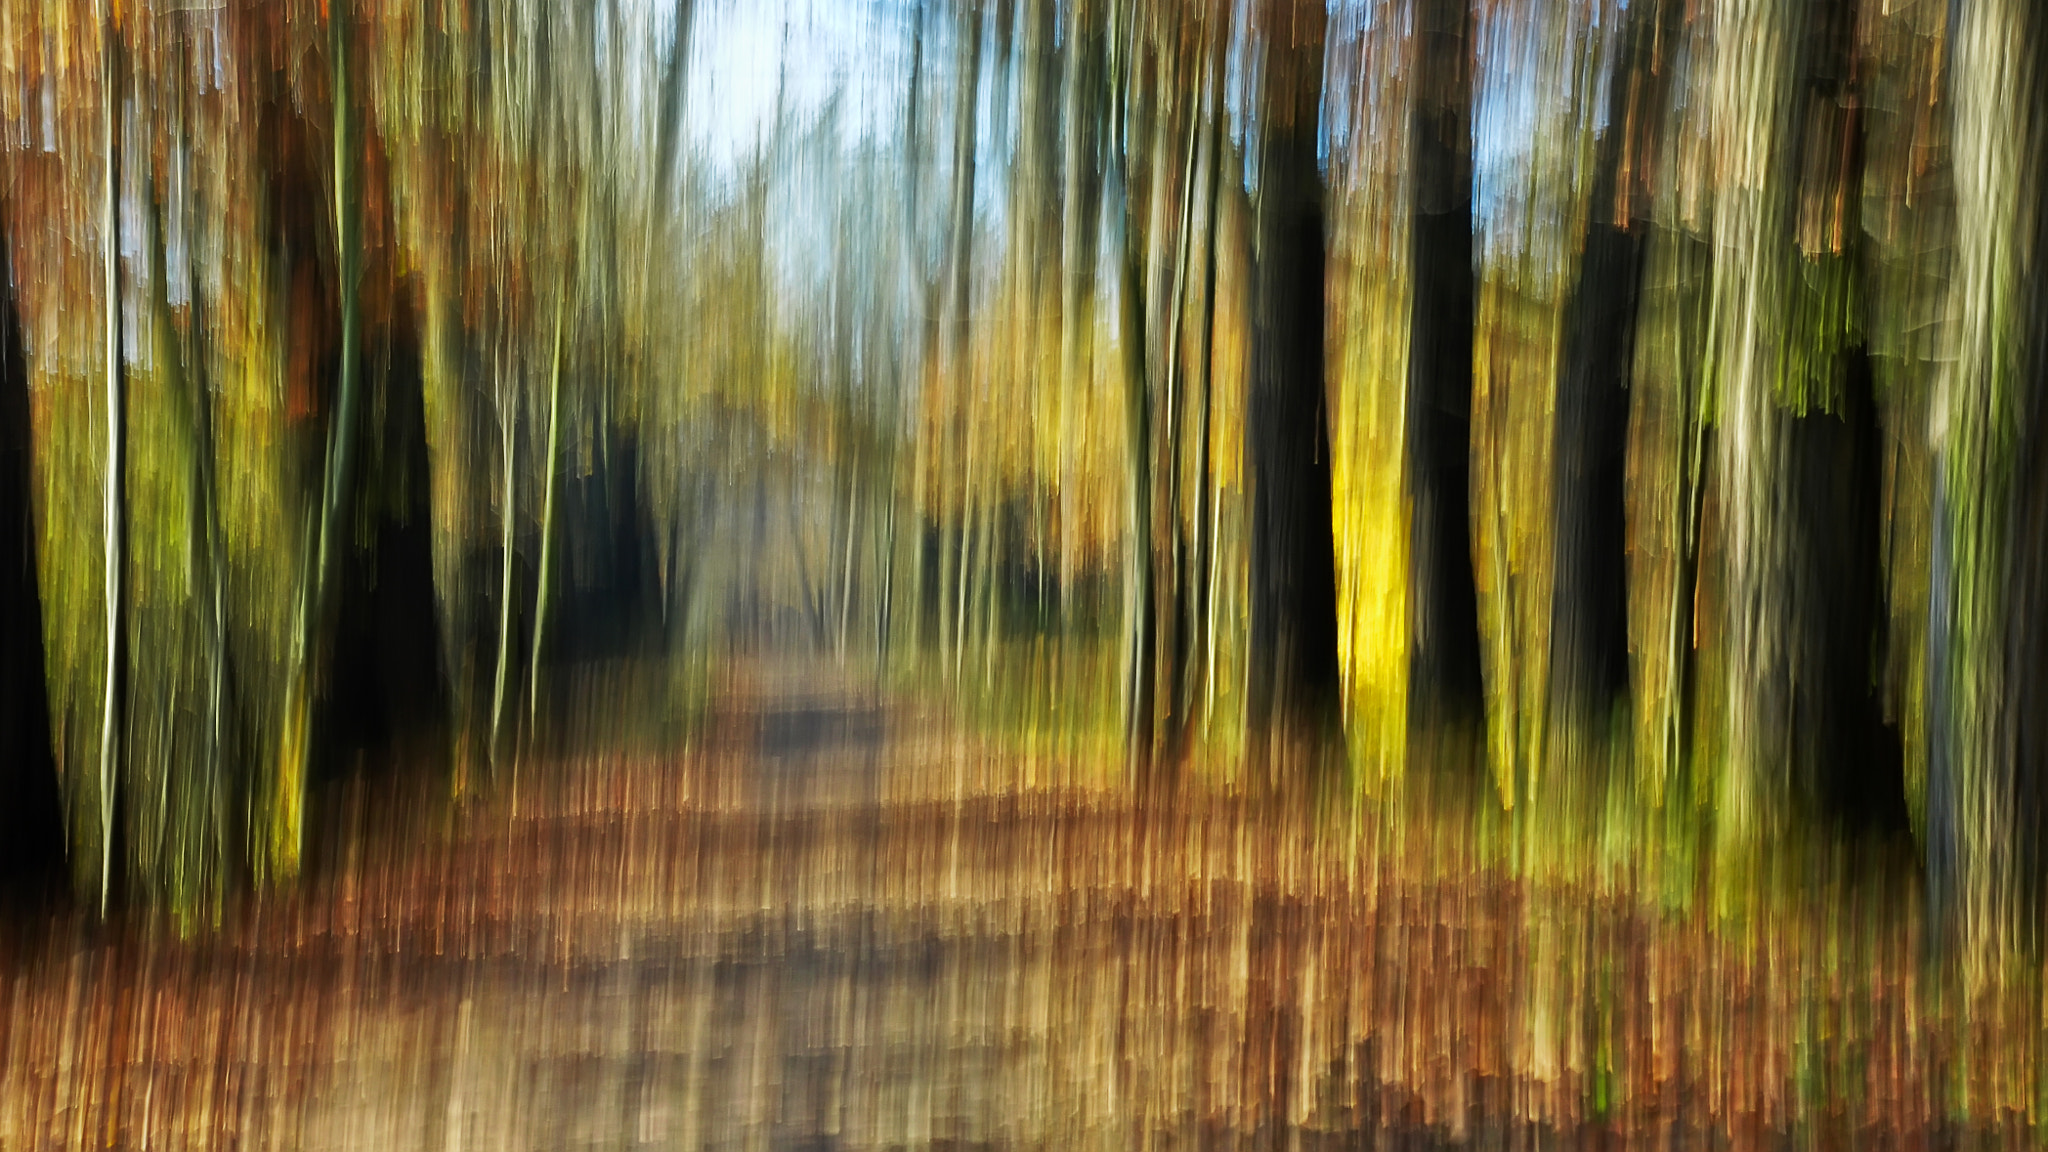 Photograph Forest by Lubomir Marcak on 500px